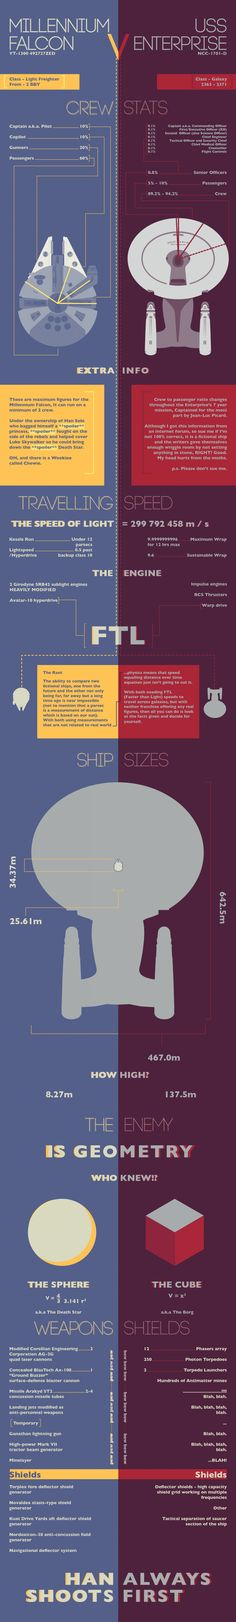 Millenium Falcom vs. USS Enterprise  Infographic <<<< Whose ship is better? Star Wars or Star Trek one? :D Its not fair it's like choosing your favourite child I simply can not... pffenterpriseyouwonpfff....